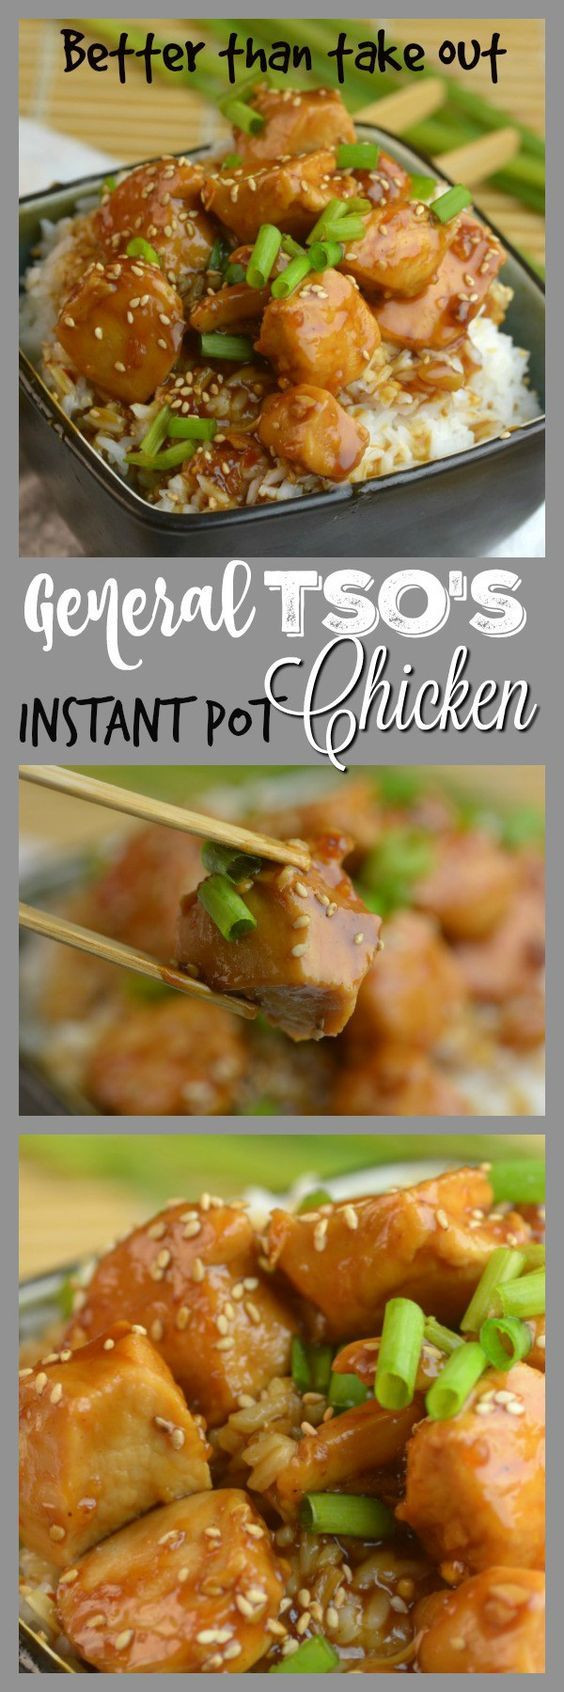 Chinese Instant Pot Recipes  Better than Take Out Instant Pot General Tso s Chicken